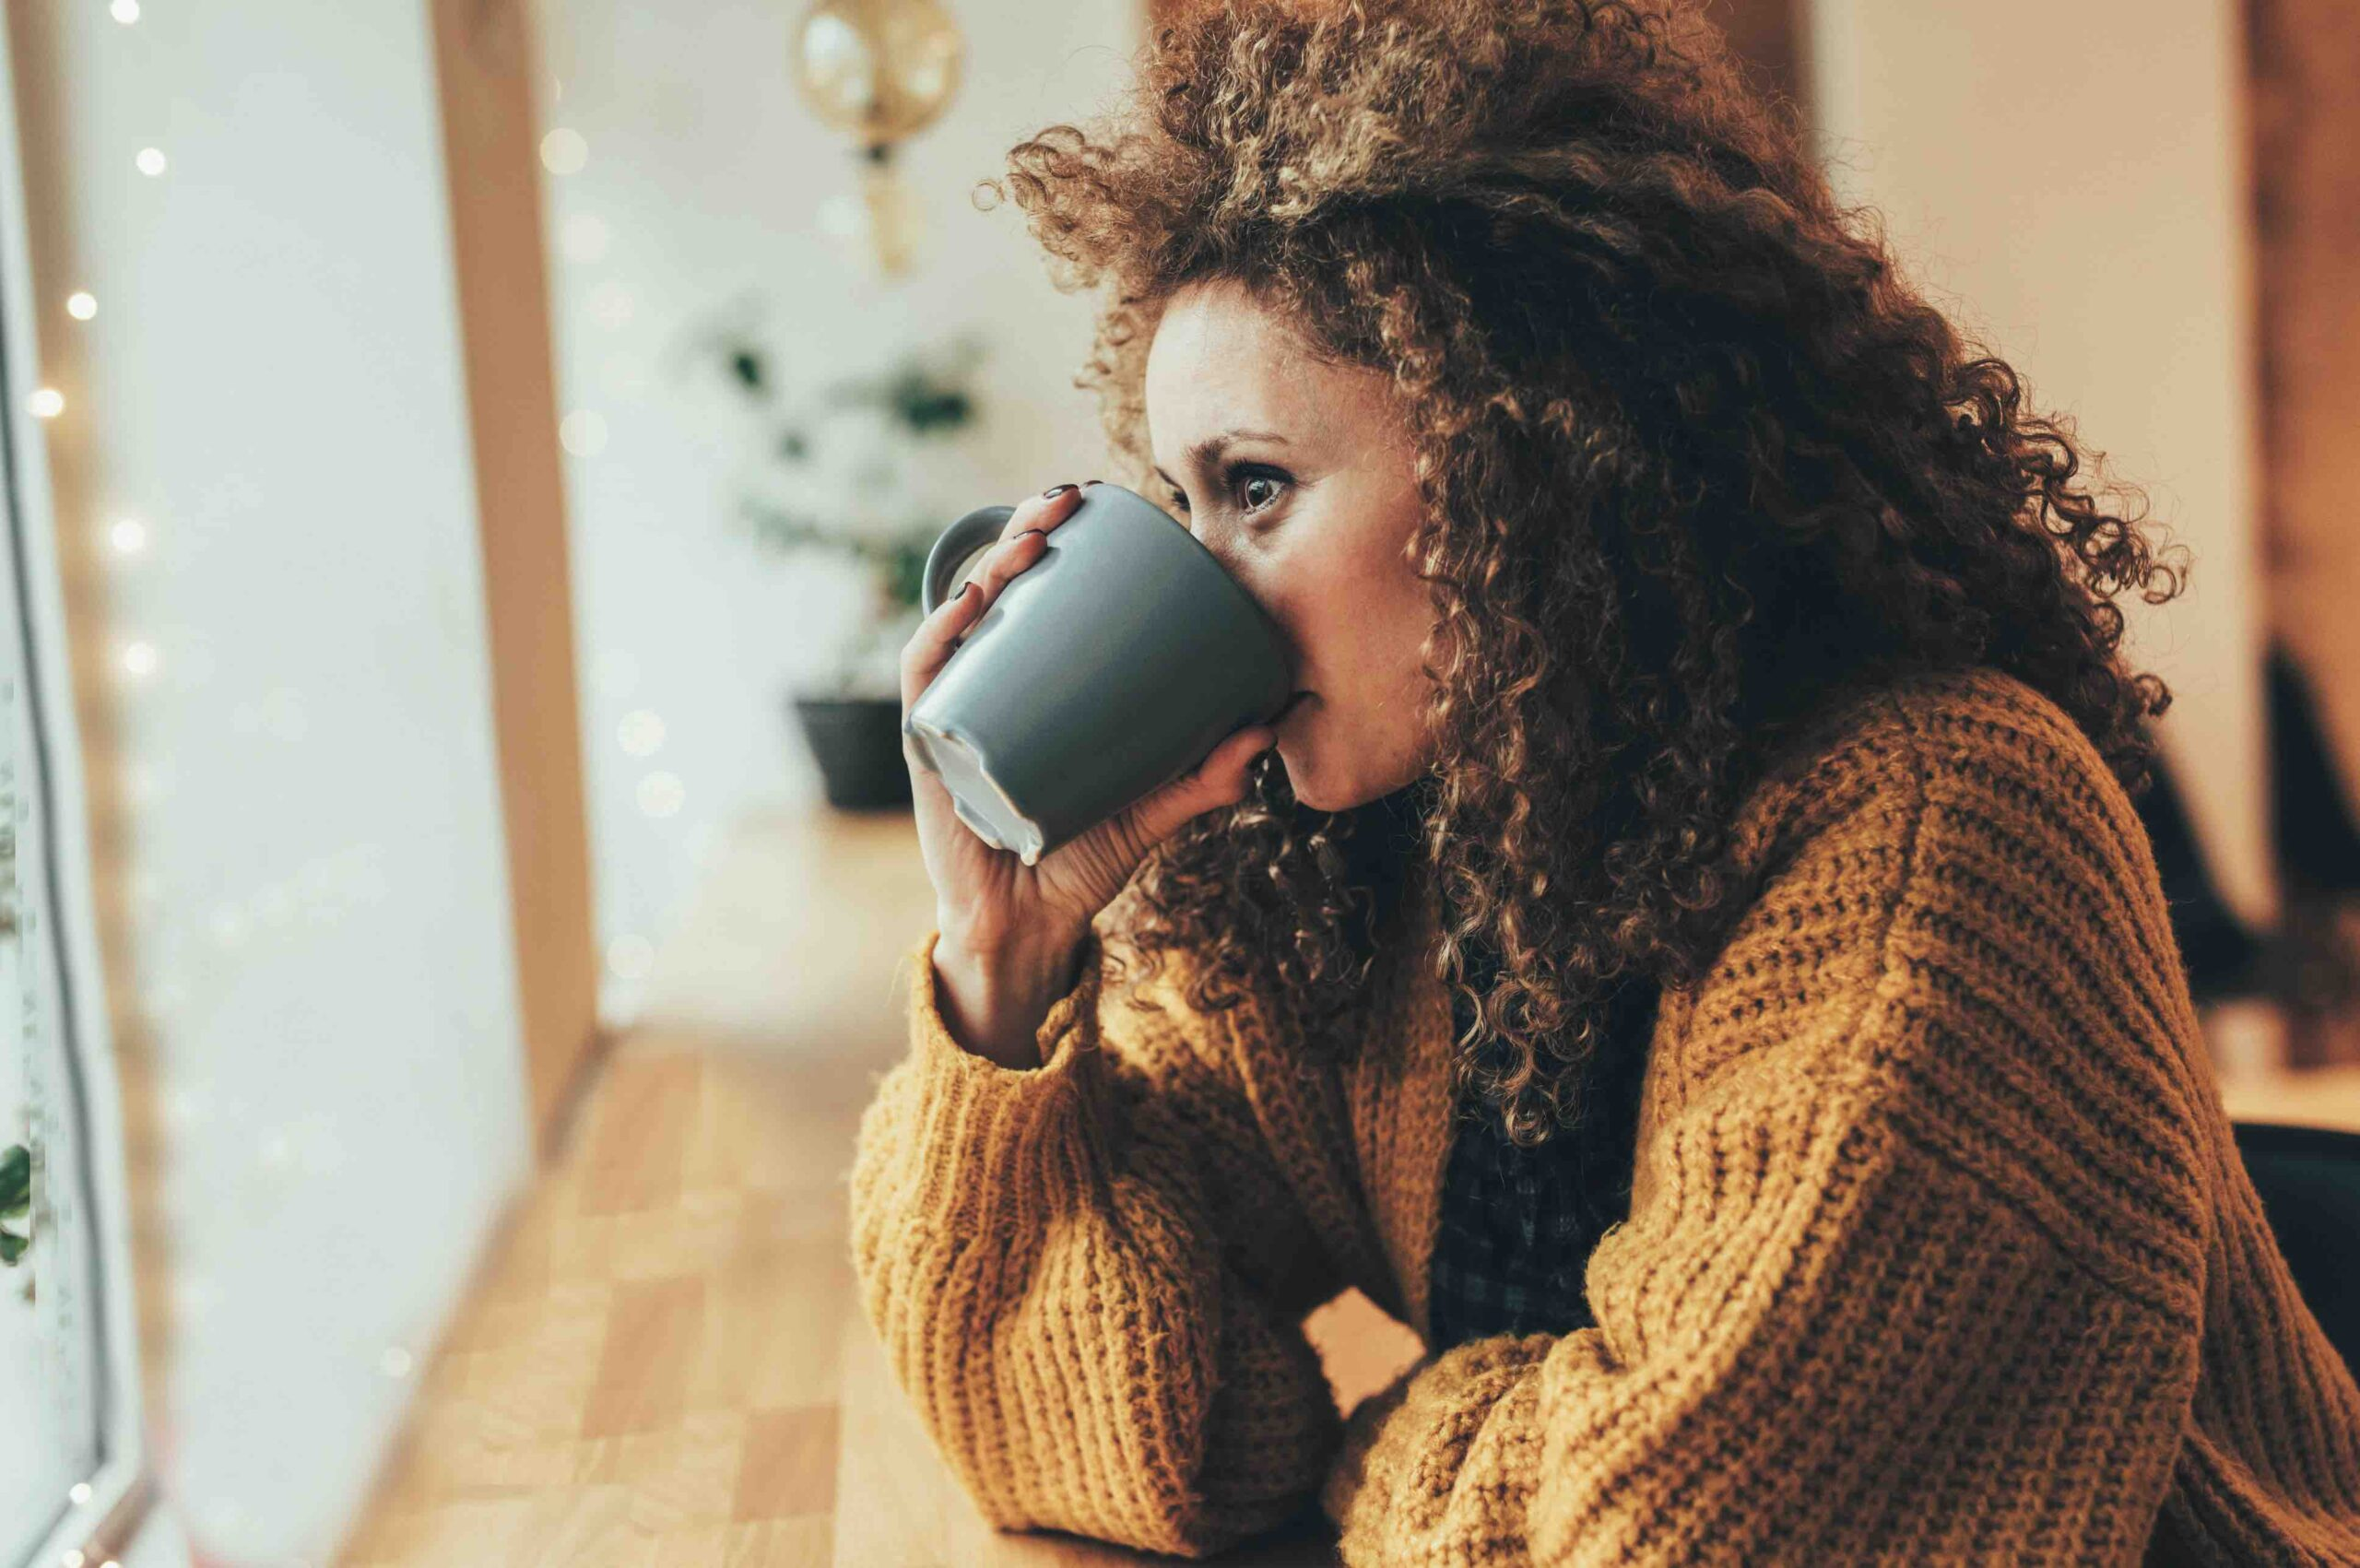 rooibos tea could transform your health